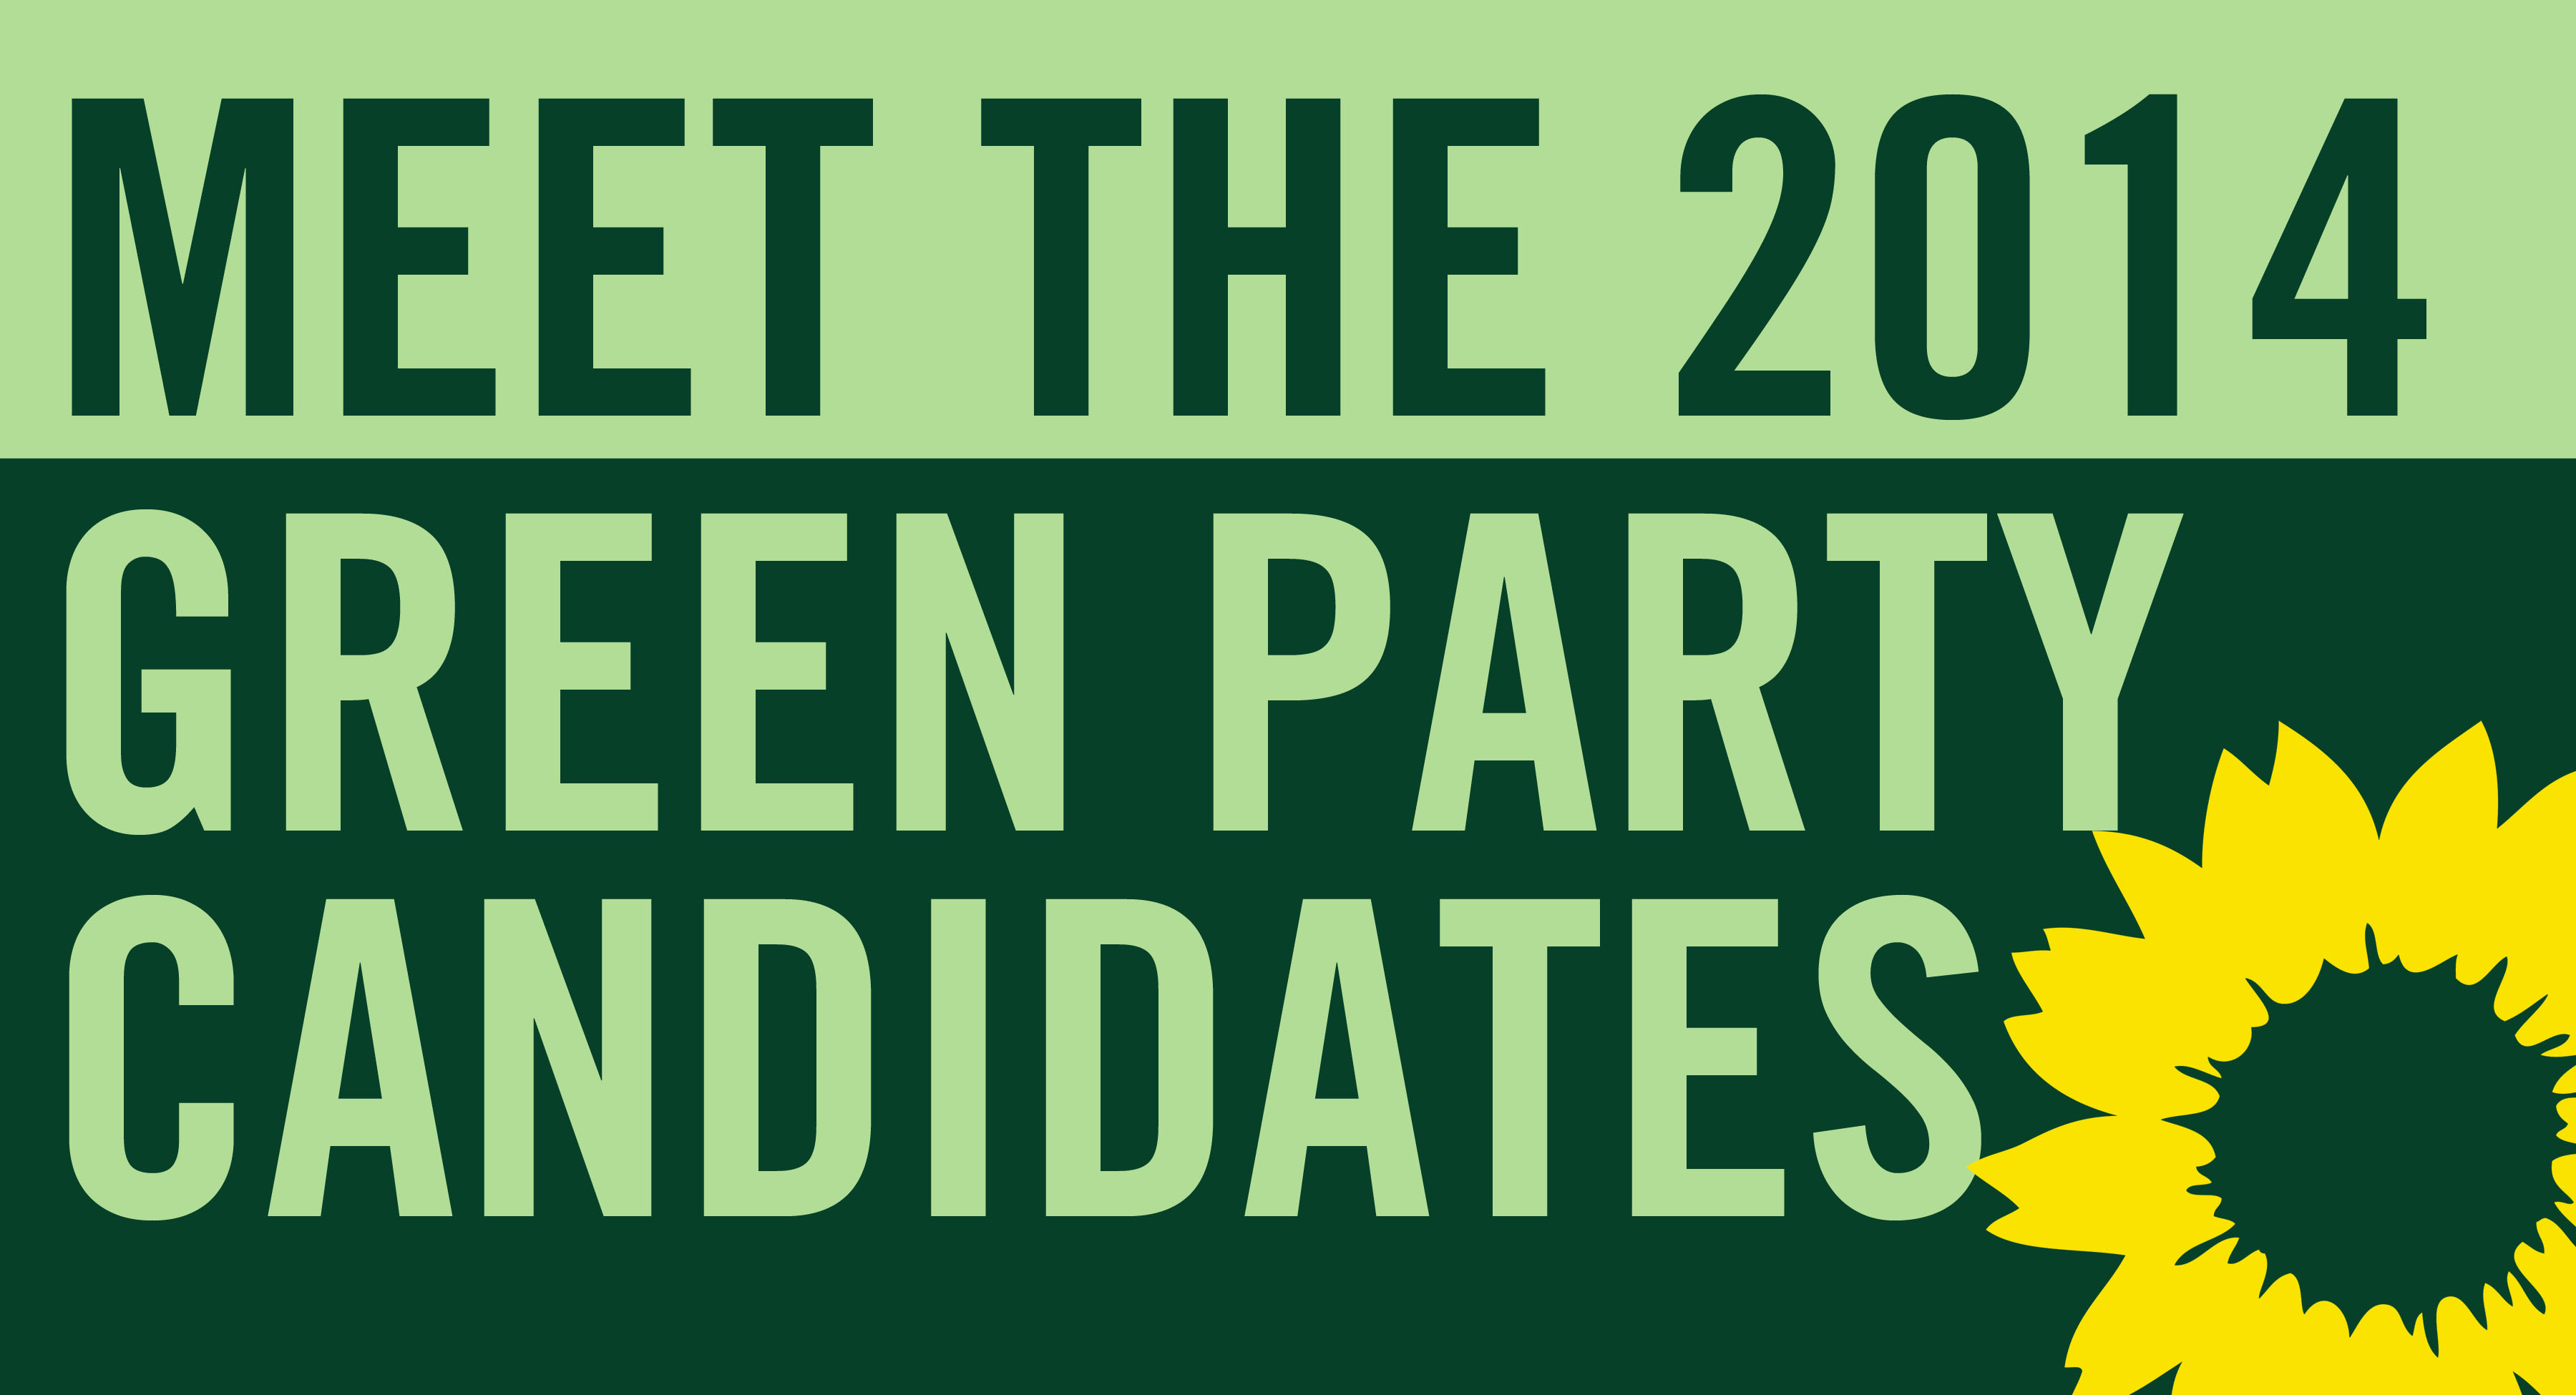 2014_green_party_candidates.jpg